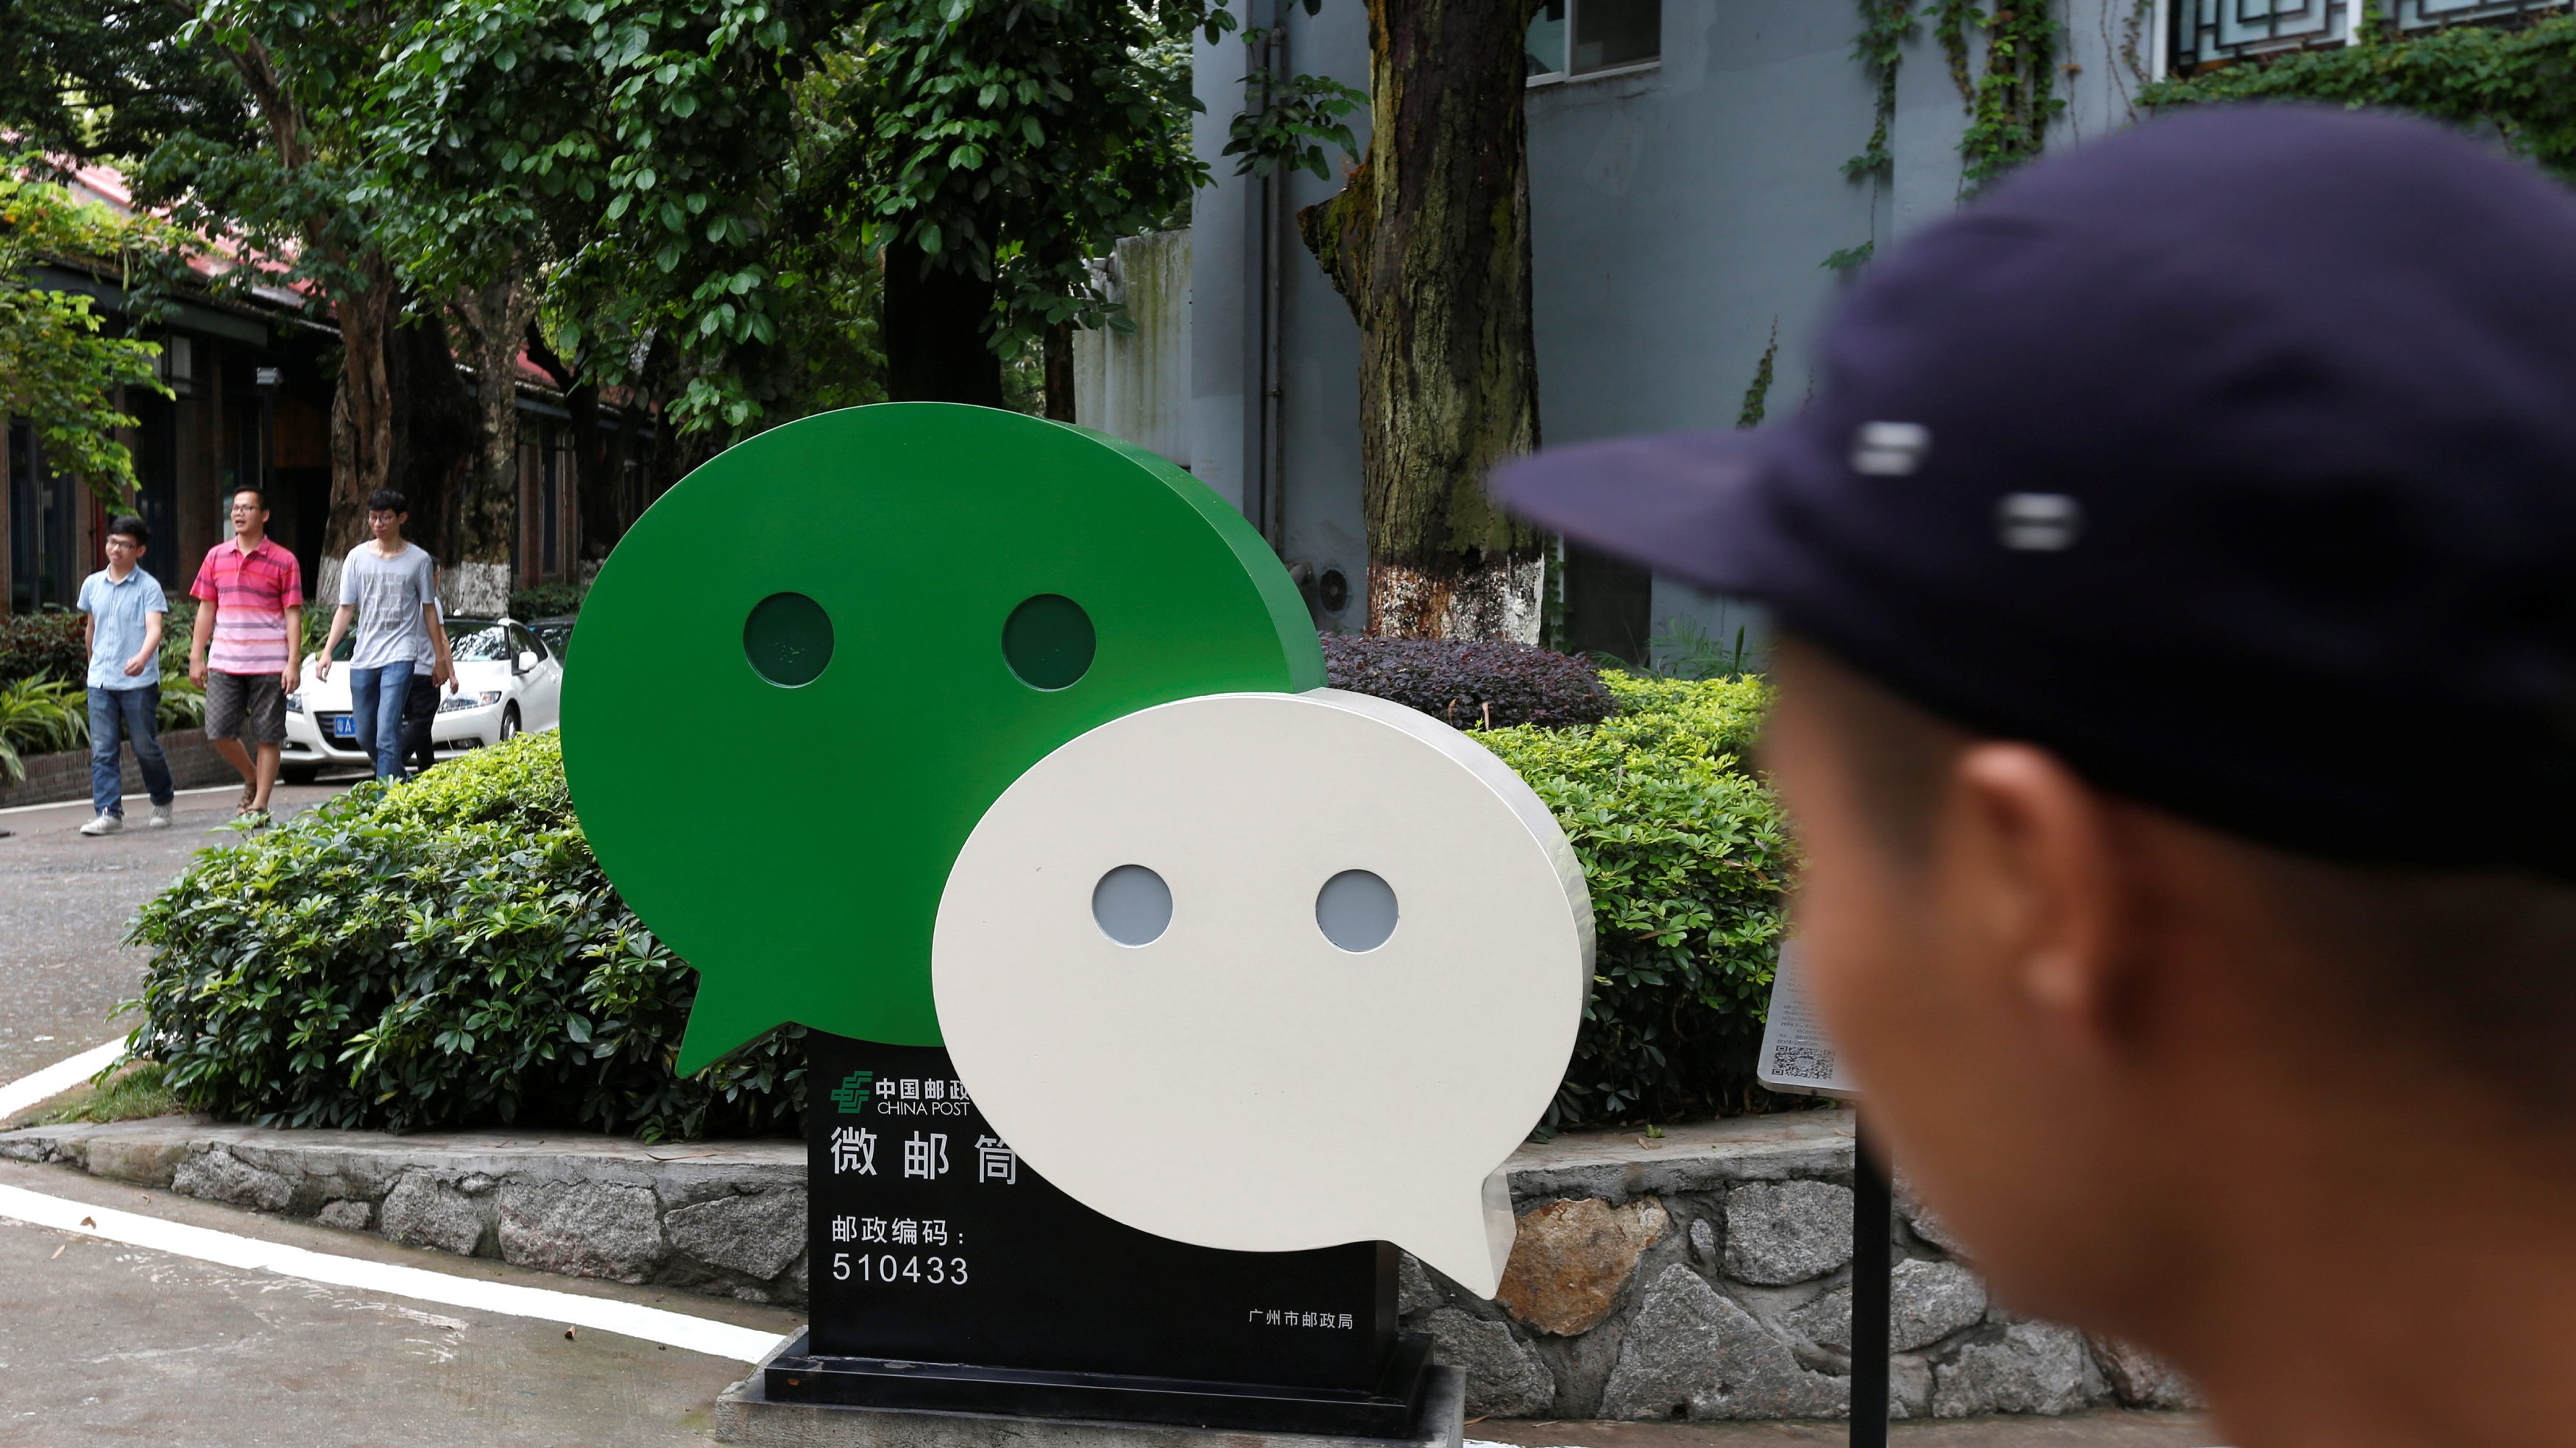 All the things you can—and can't—do with your WeChat account in China